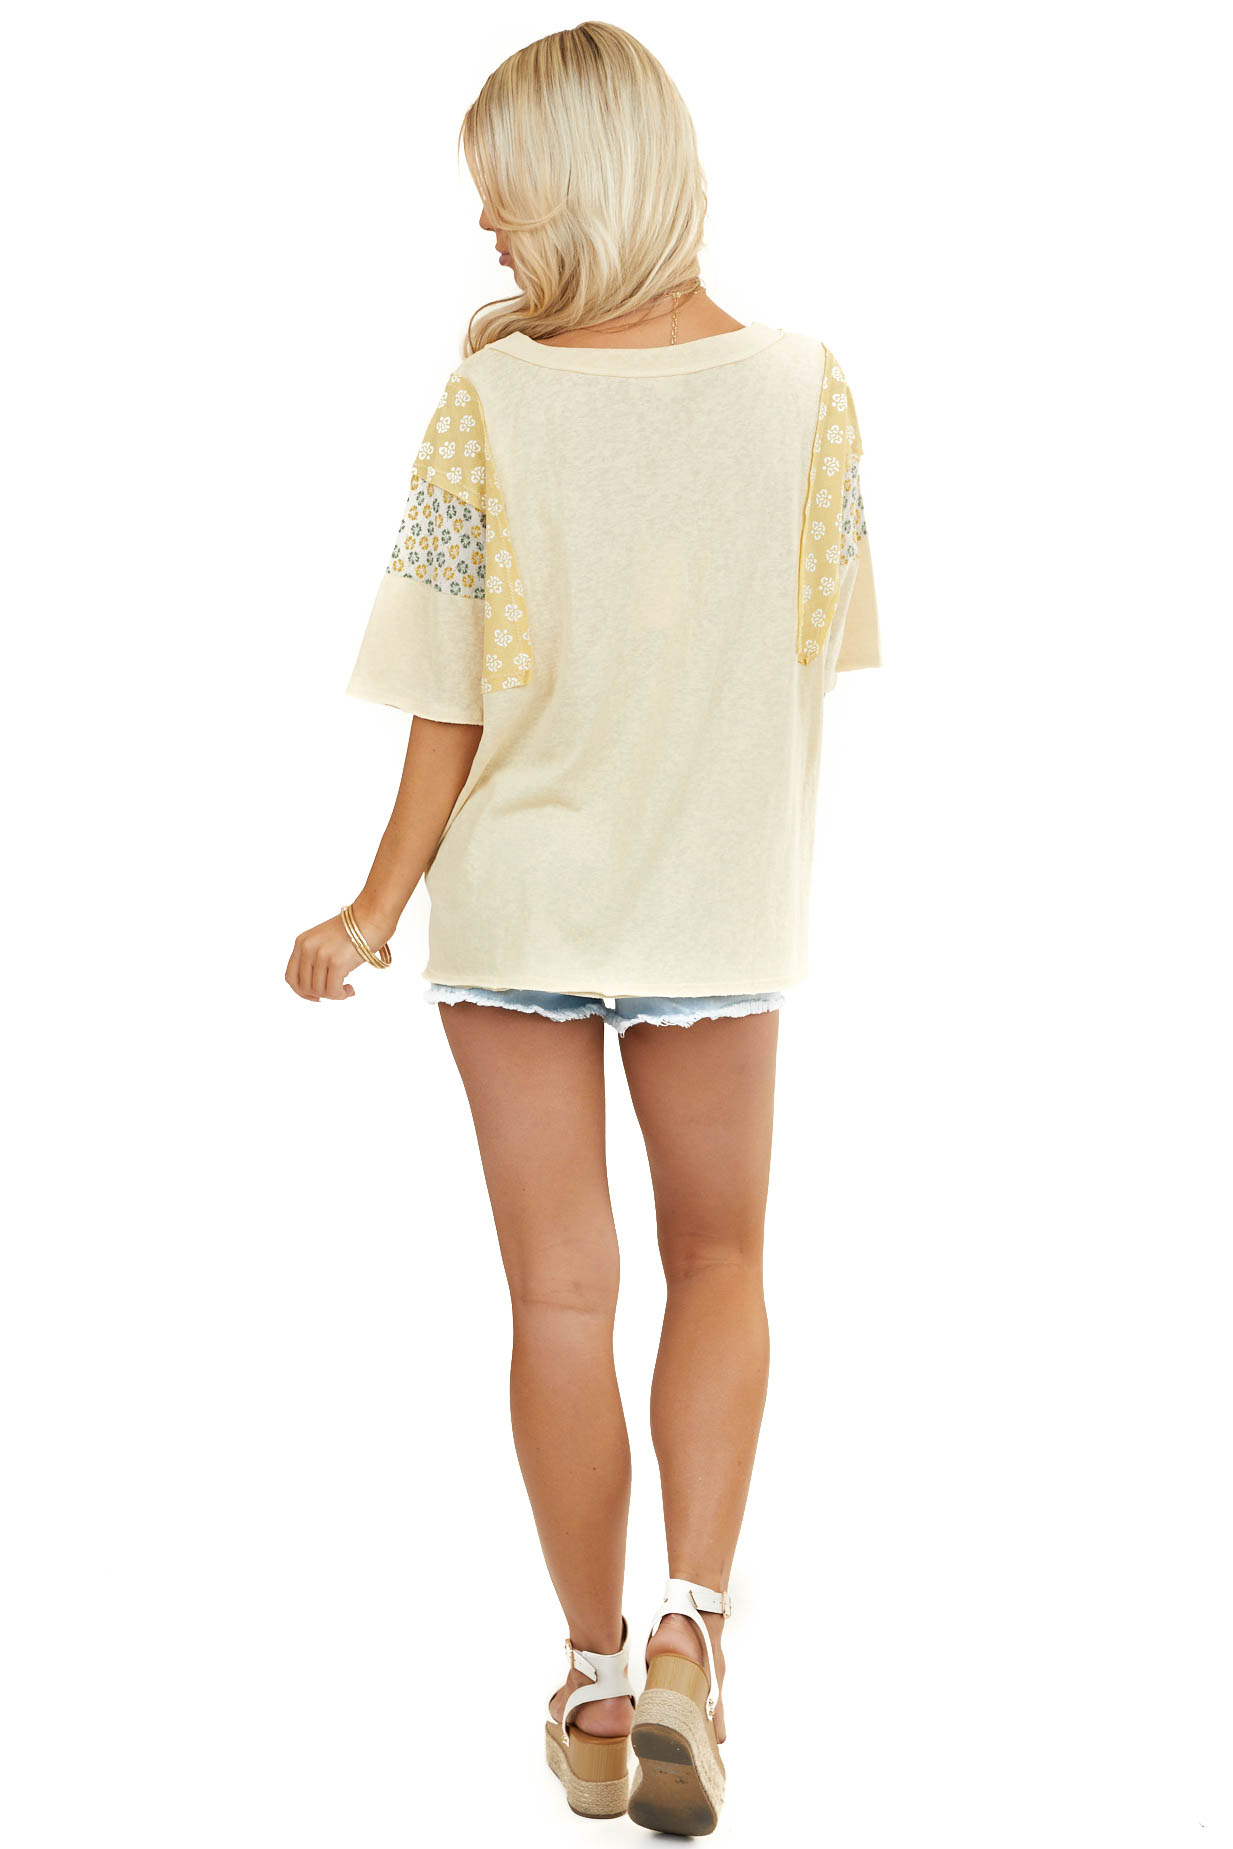 Straw Yellow Knit Tee Shirt with Multiprint Contrast Sleeves